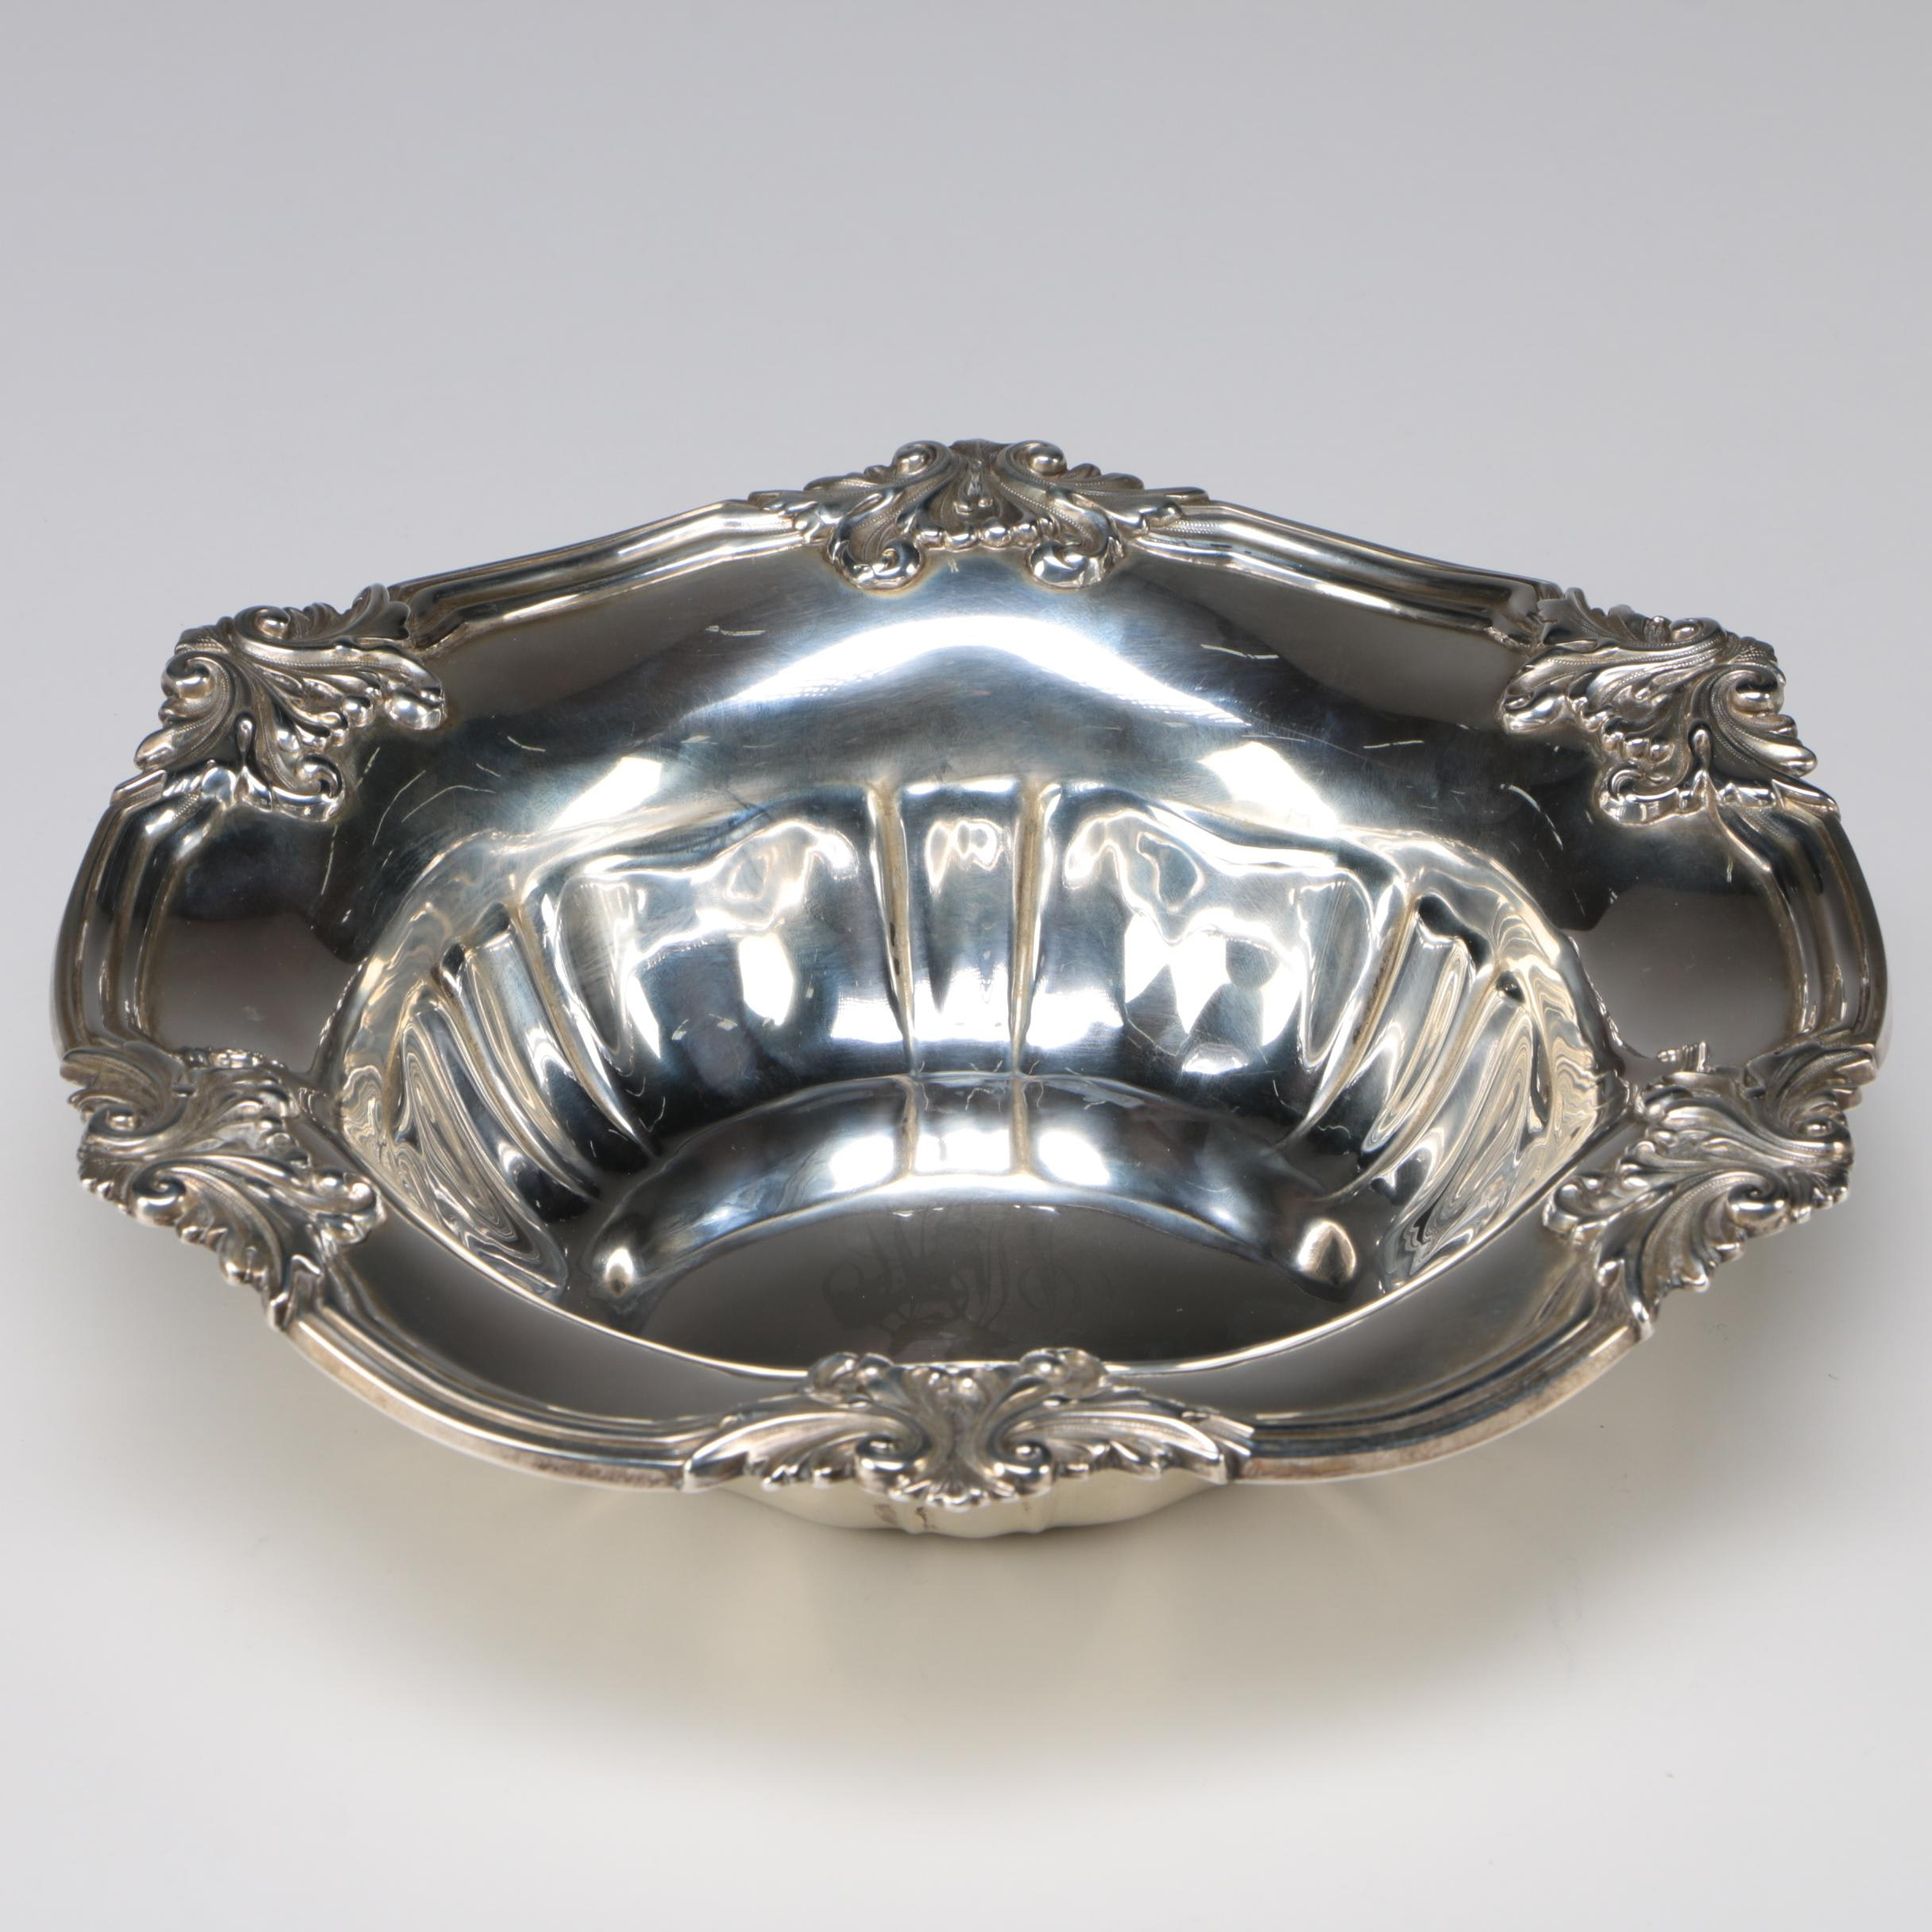 Unger Brothers Sterling Silver Bowl, Late 19th/ Early 20th Century